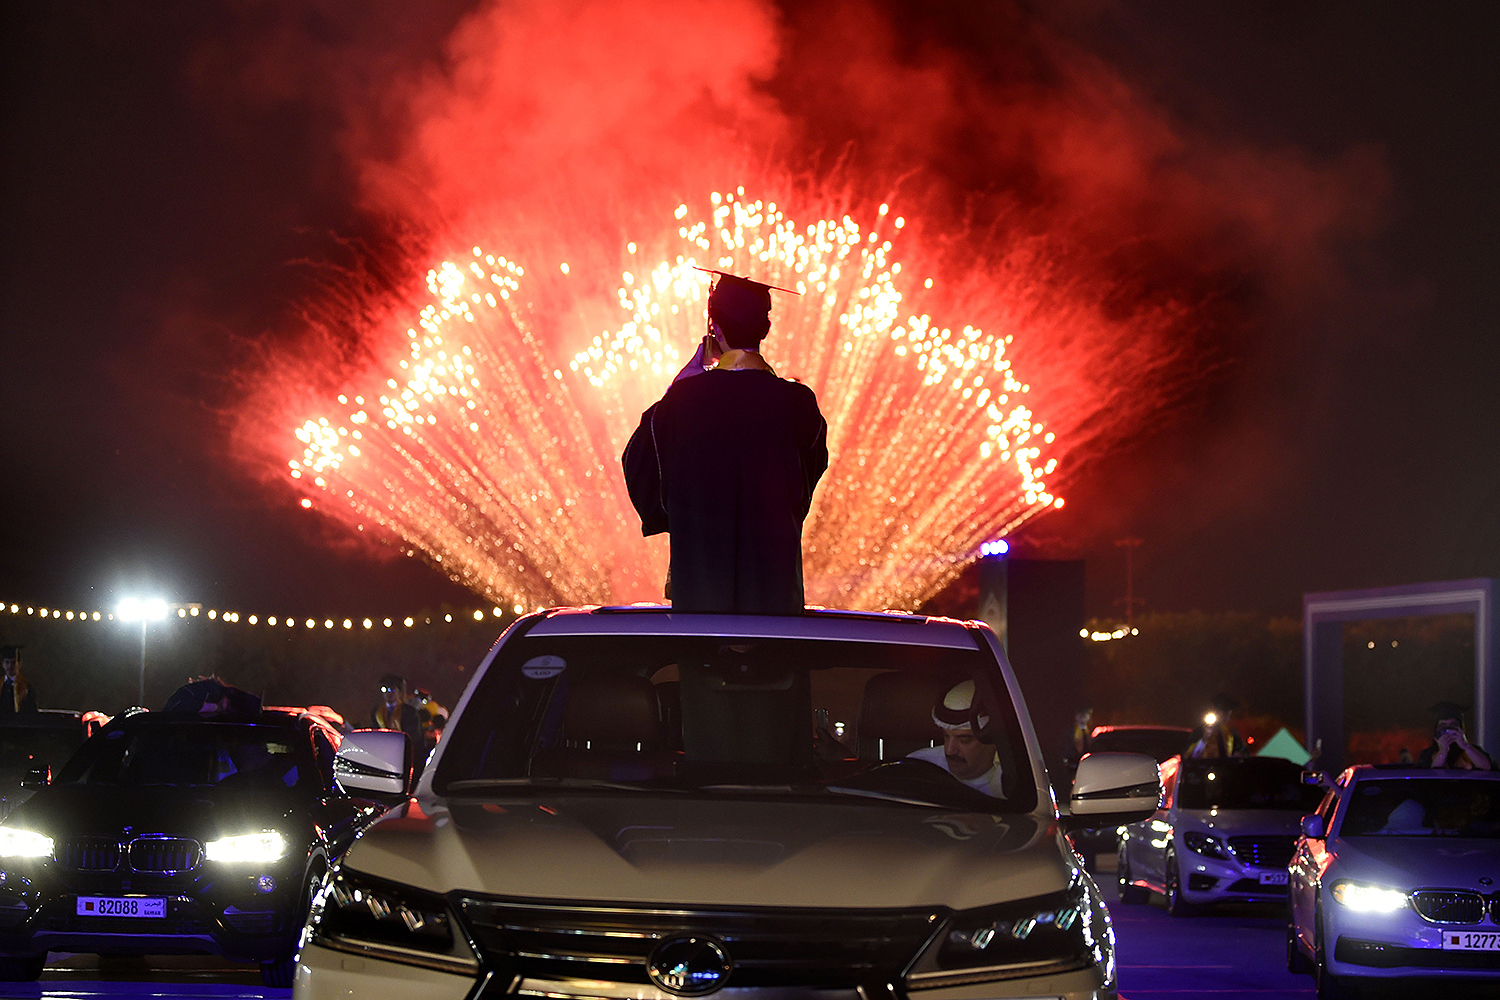 Following a socially distanced graduation ceremony, high school seniors and their families watch fireworks at the Bahrain International Circuit car racing track in Sakhir, Bahrain, on June 10. MAZEN MAHDI/AFP via Getty Images